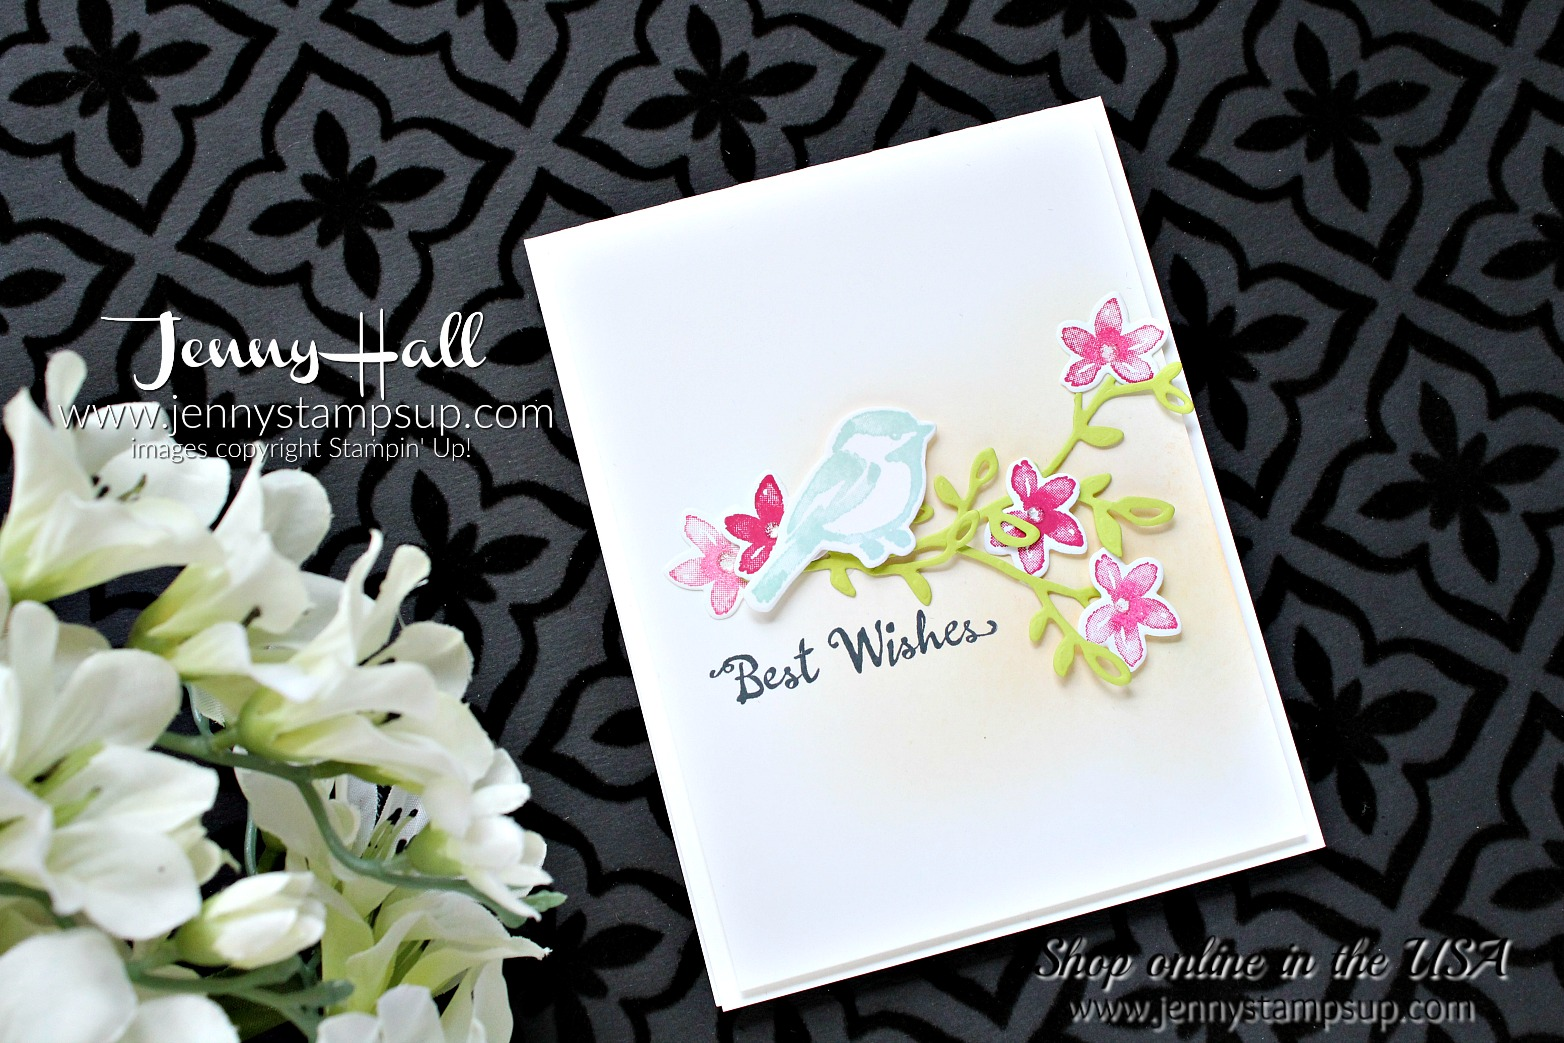 Spring color card with Petal Palette for Color Throwdown by Jenny Hall at www.jennyhalldesign.com for #cardmaking #stamping #handstamped #petalpalette #fruitycolors #cascards #cleanandsimplecards #stampinup #jennyhalldesign #jennystampsup #jennyhallstampinup #cardmakingvideos #colorthrowdown #softcoloring #inkblending #ombre #papercraft